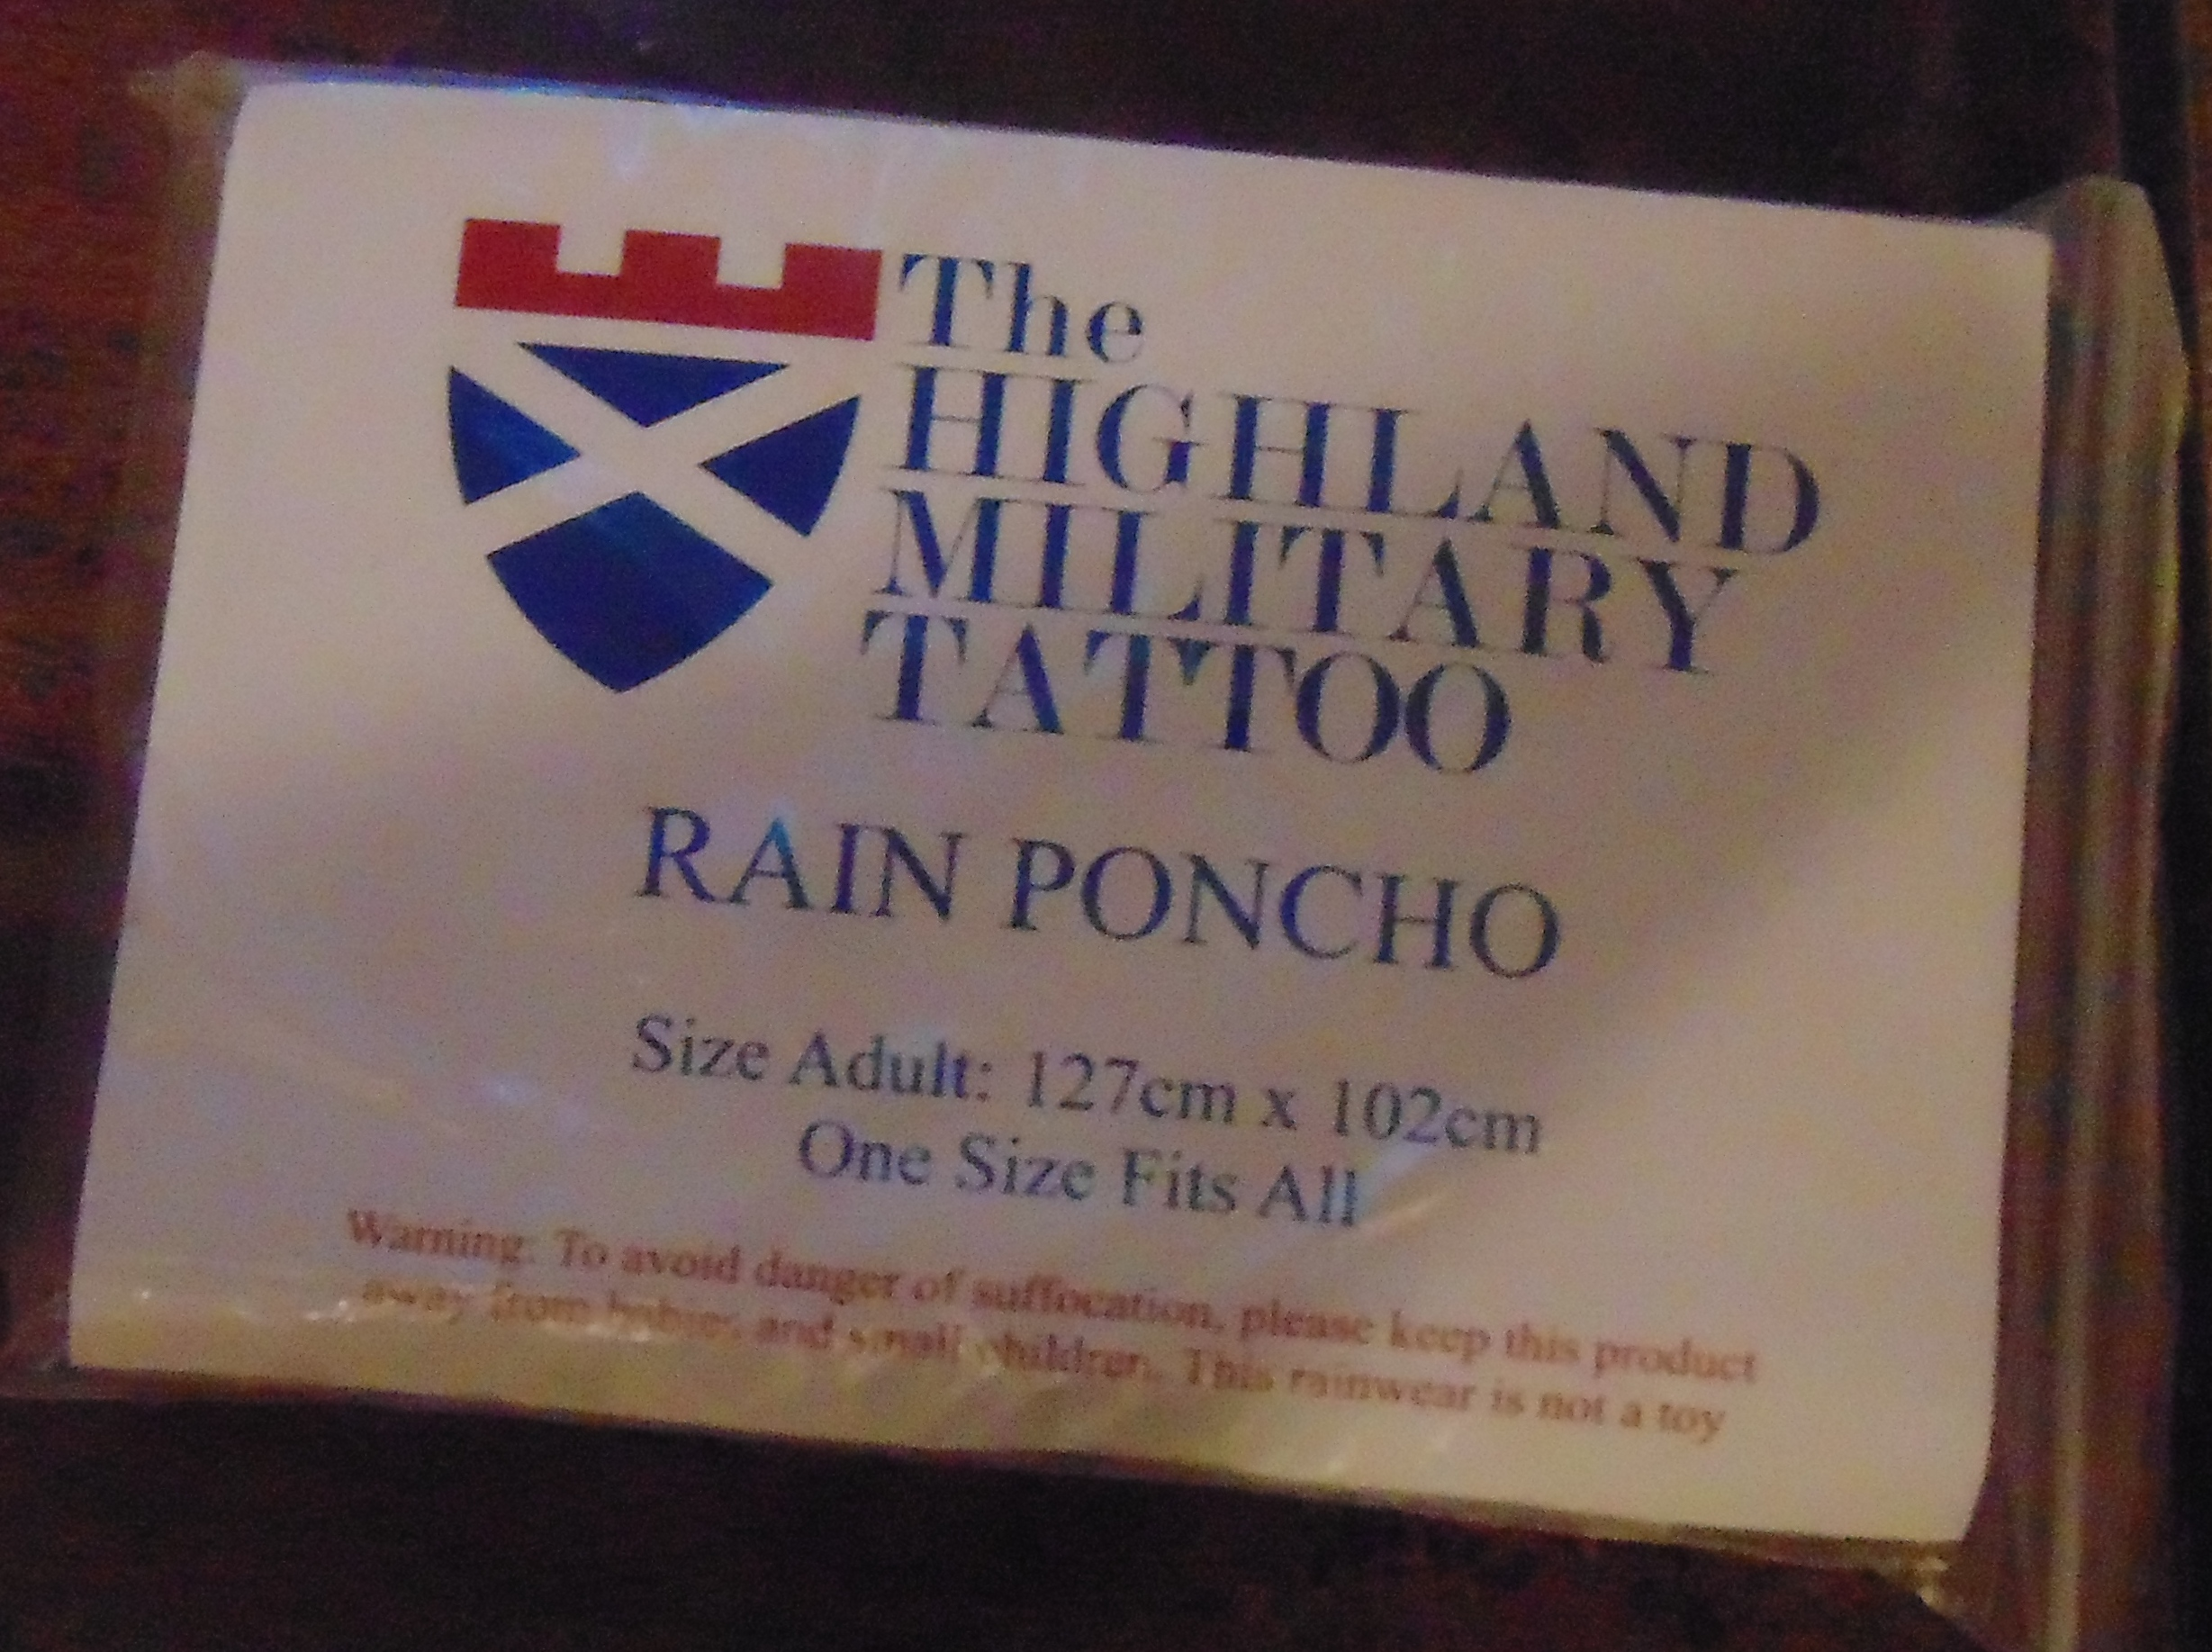 The Highland Military Tattoo Poncho